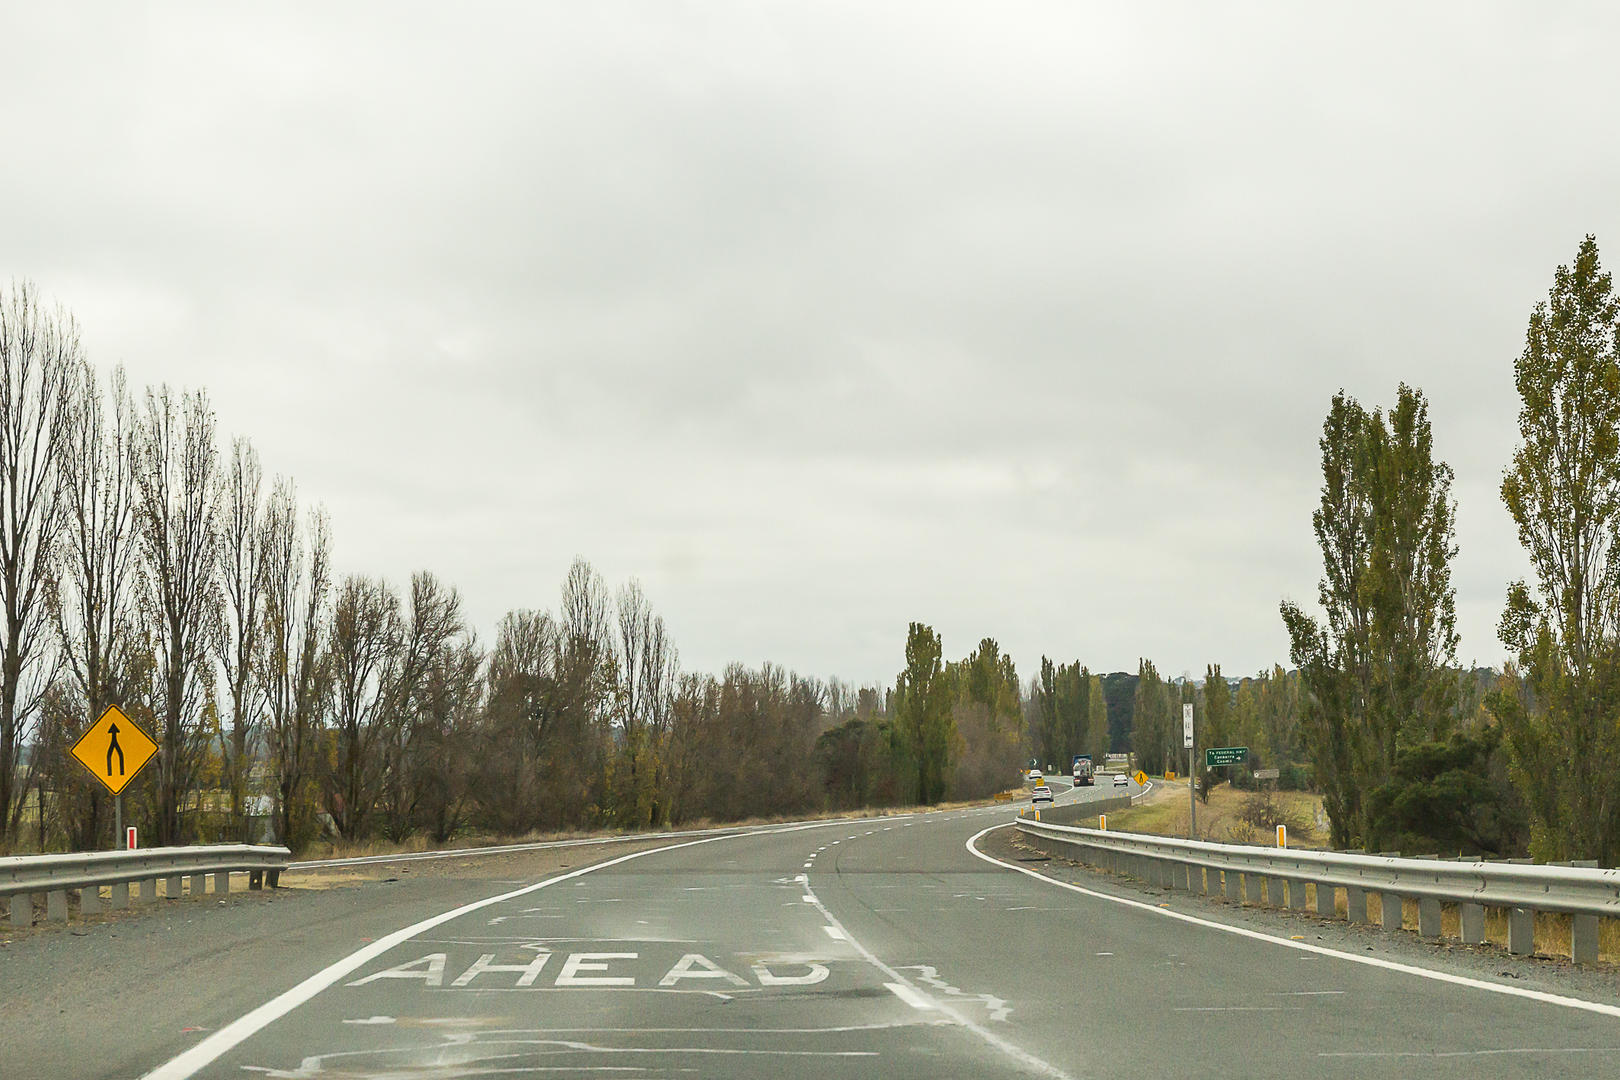 The Highway 33